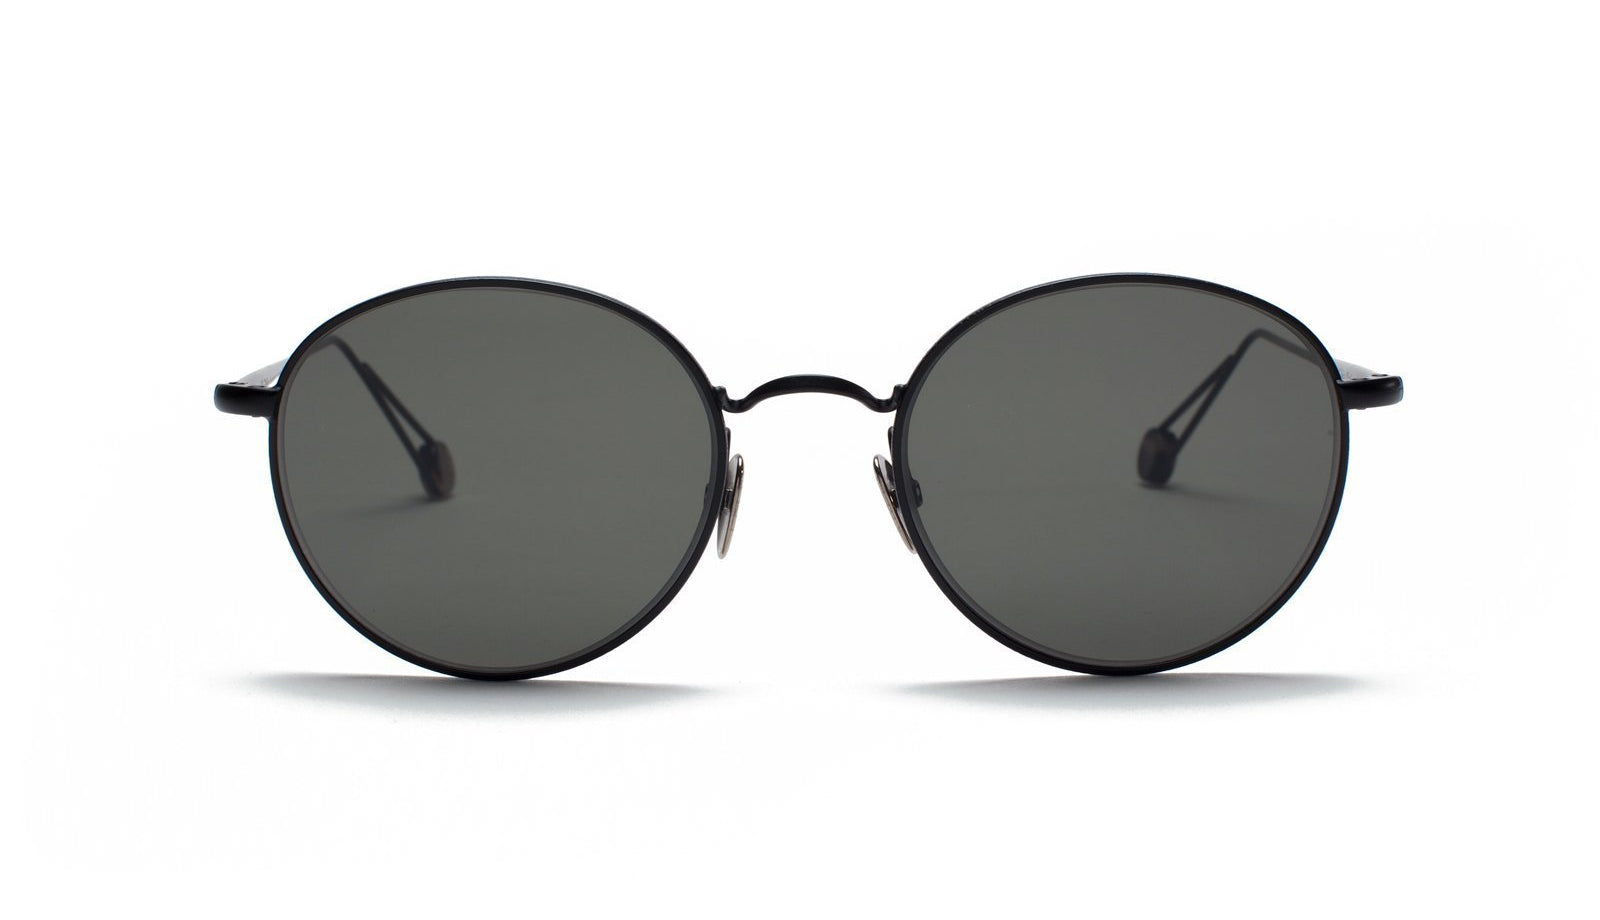 Ahlem Place de l'Opera Sunglasses Black